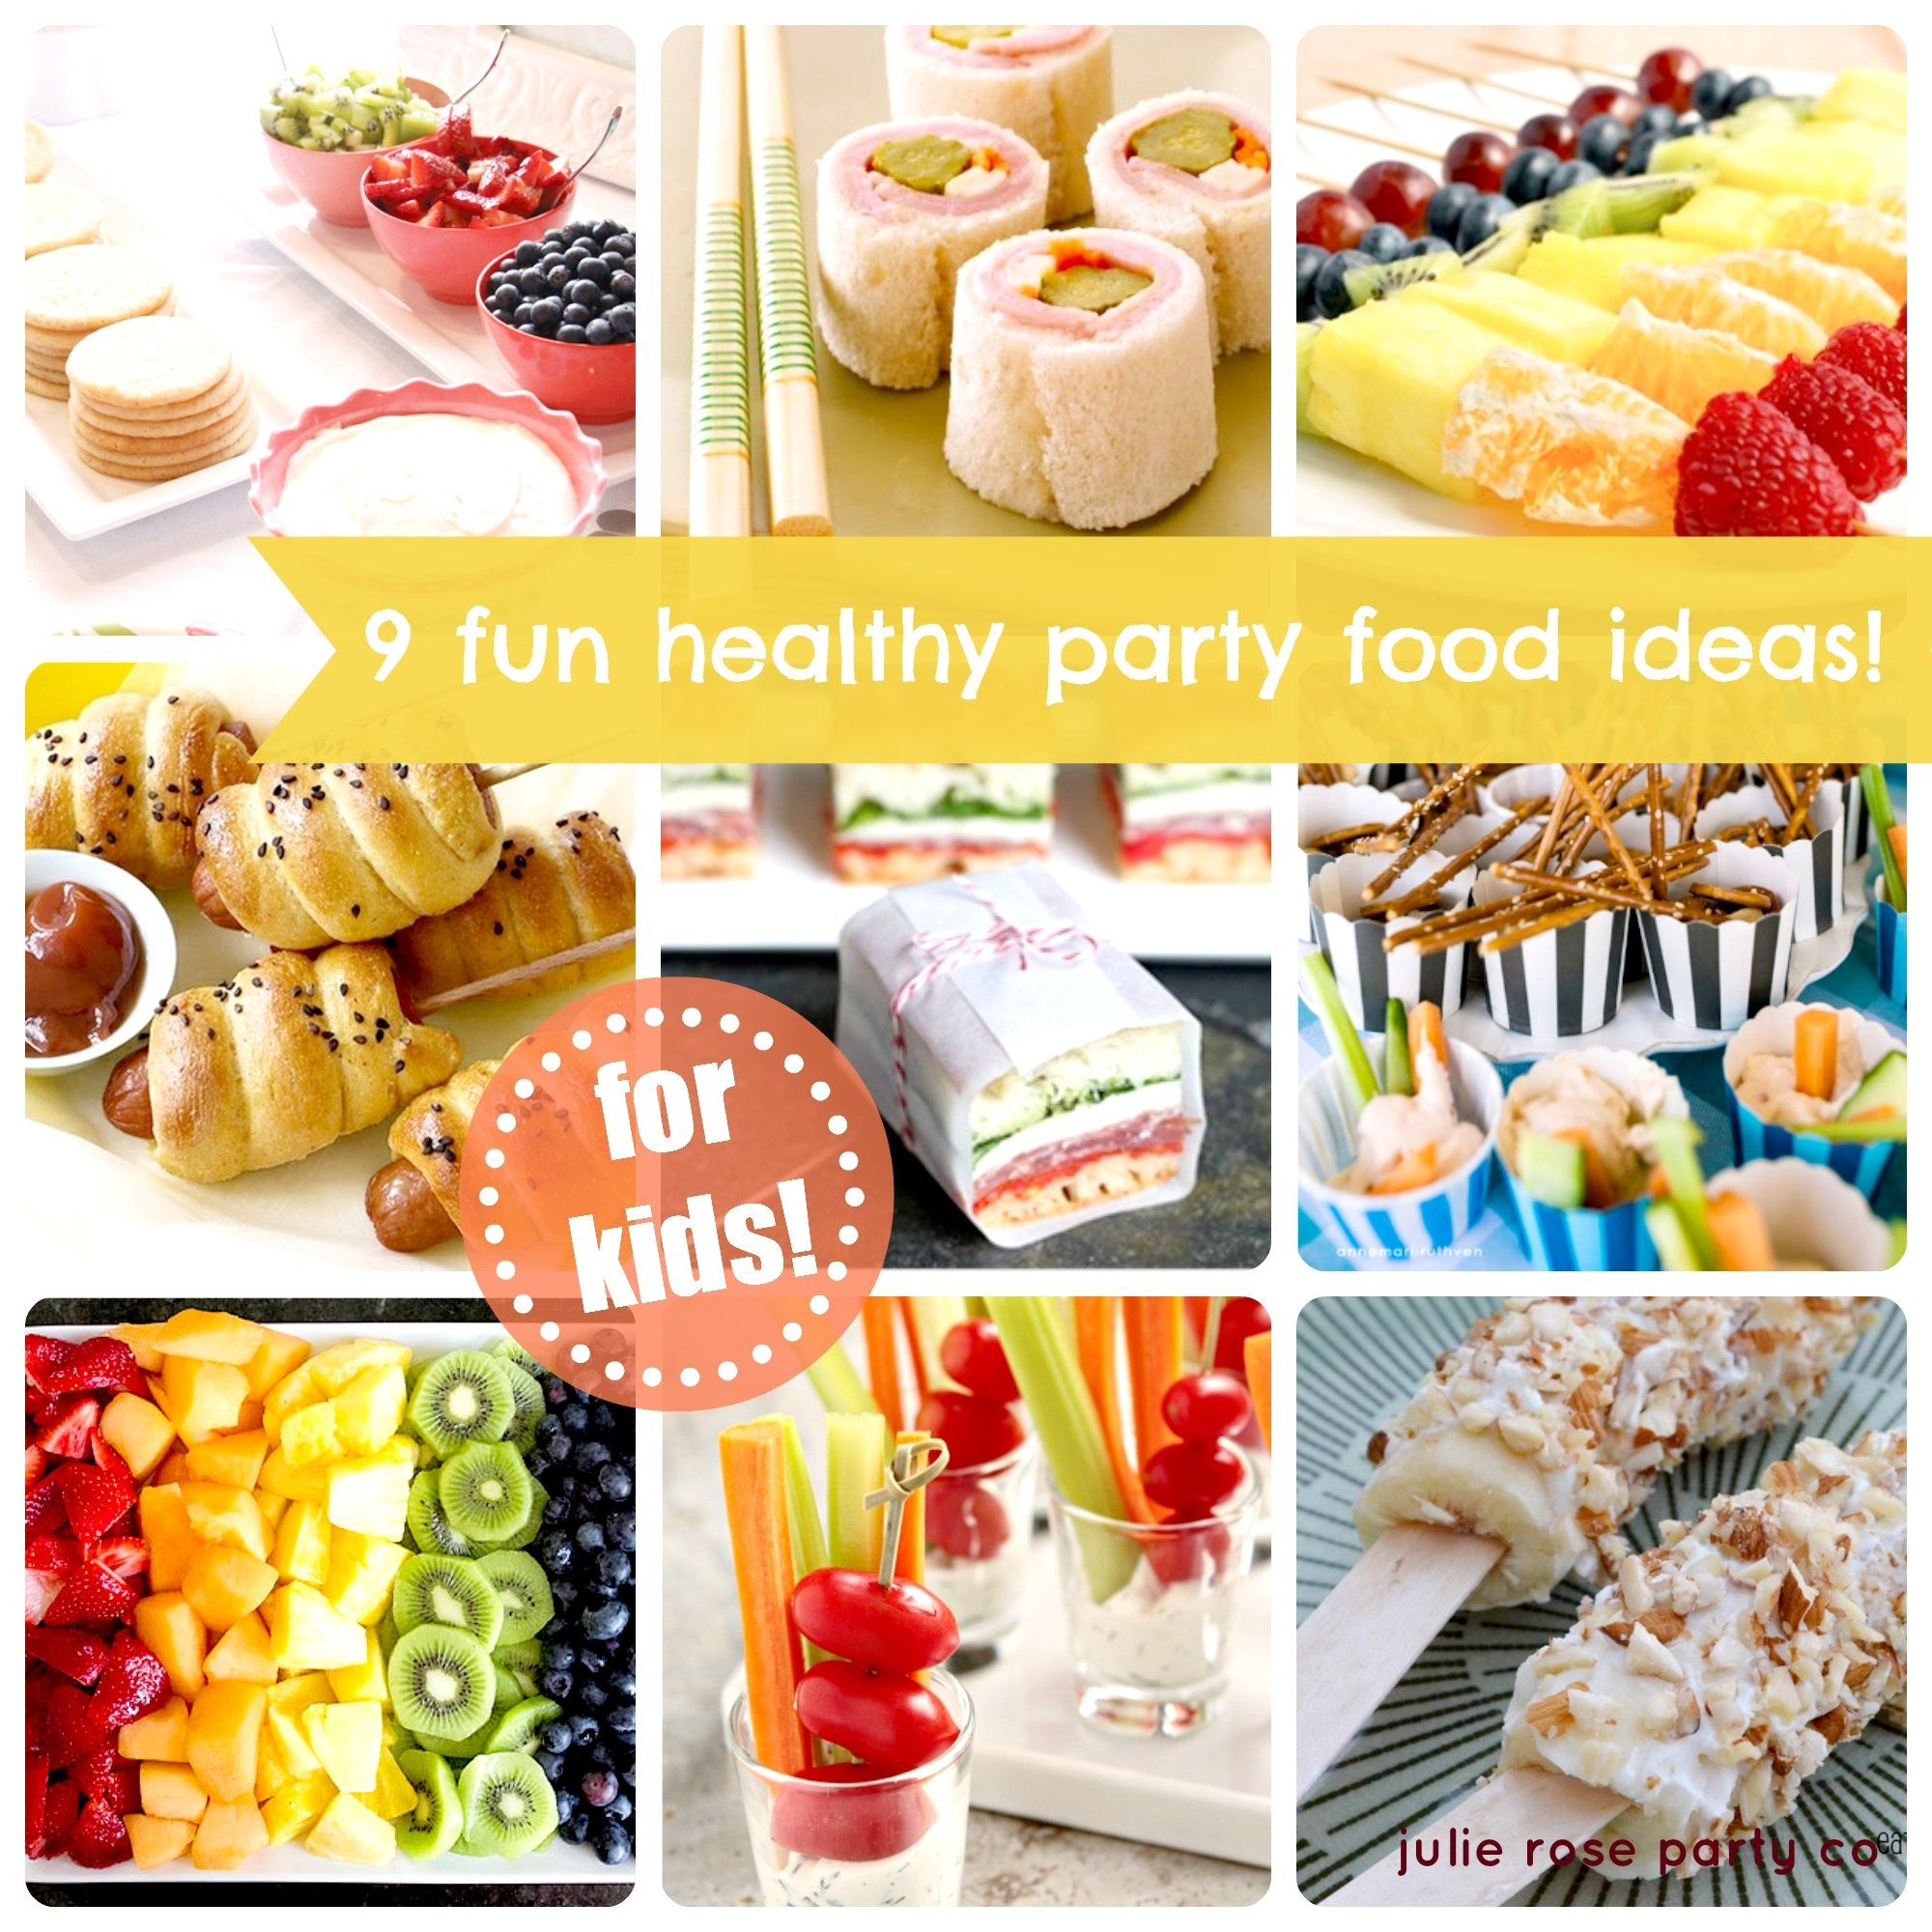 9 fun and healthy party food ideas {kids} | julie rose party co.